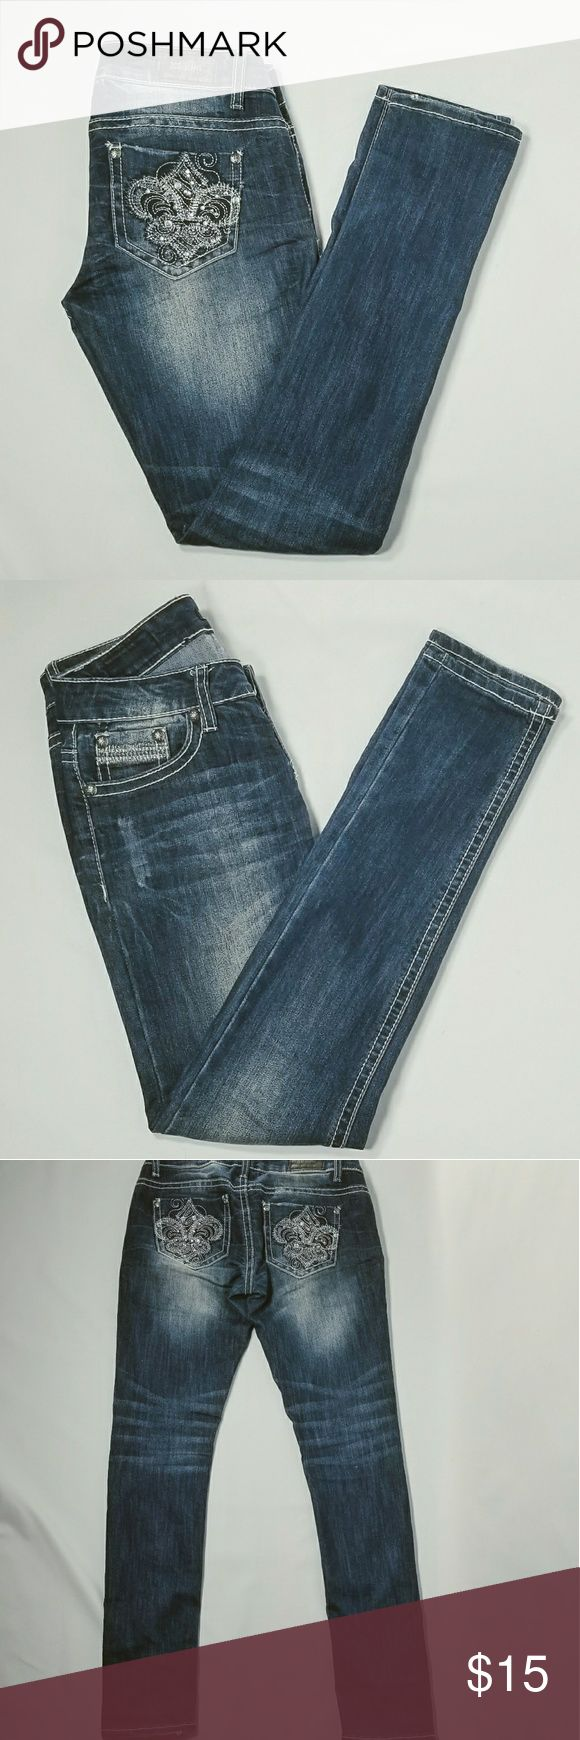 """ZCO Skinny Jeans - Size 5 Juniors ZCO skinny jeans. Dark wash, no gems missing. Juniors size 5 Waist - 15"""" Front rise - 8"""" Inseam - 31"""" (Flat lay) ZCO Jeans Skinny"""